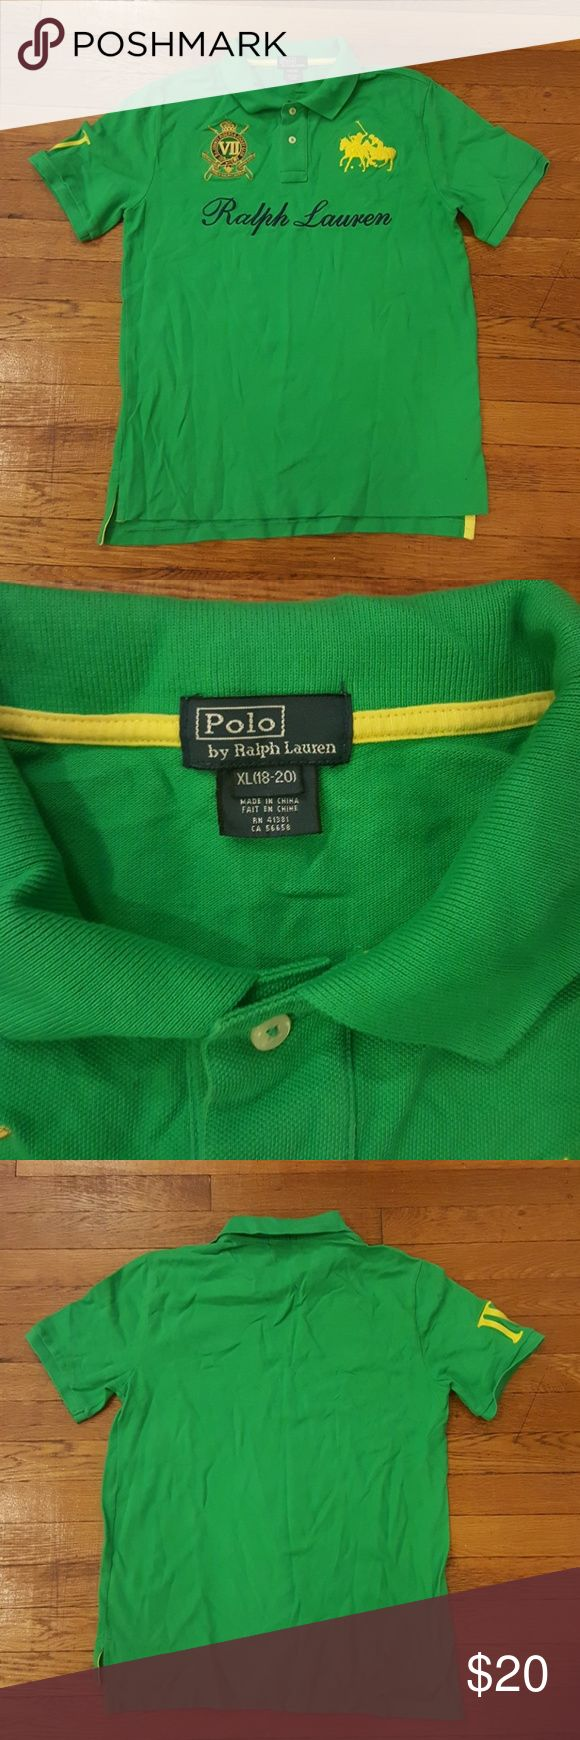 Ralph Lauren Polo shirt Embroidered polo shirt with Roman numeral 4 on right sleeve Polo by Ralph Lauren Shirts & Tops Polos